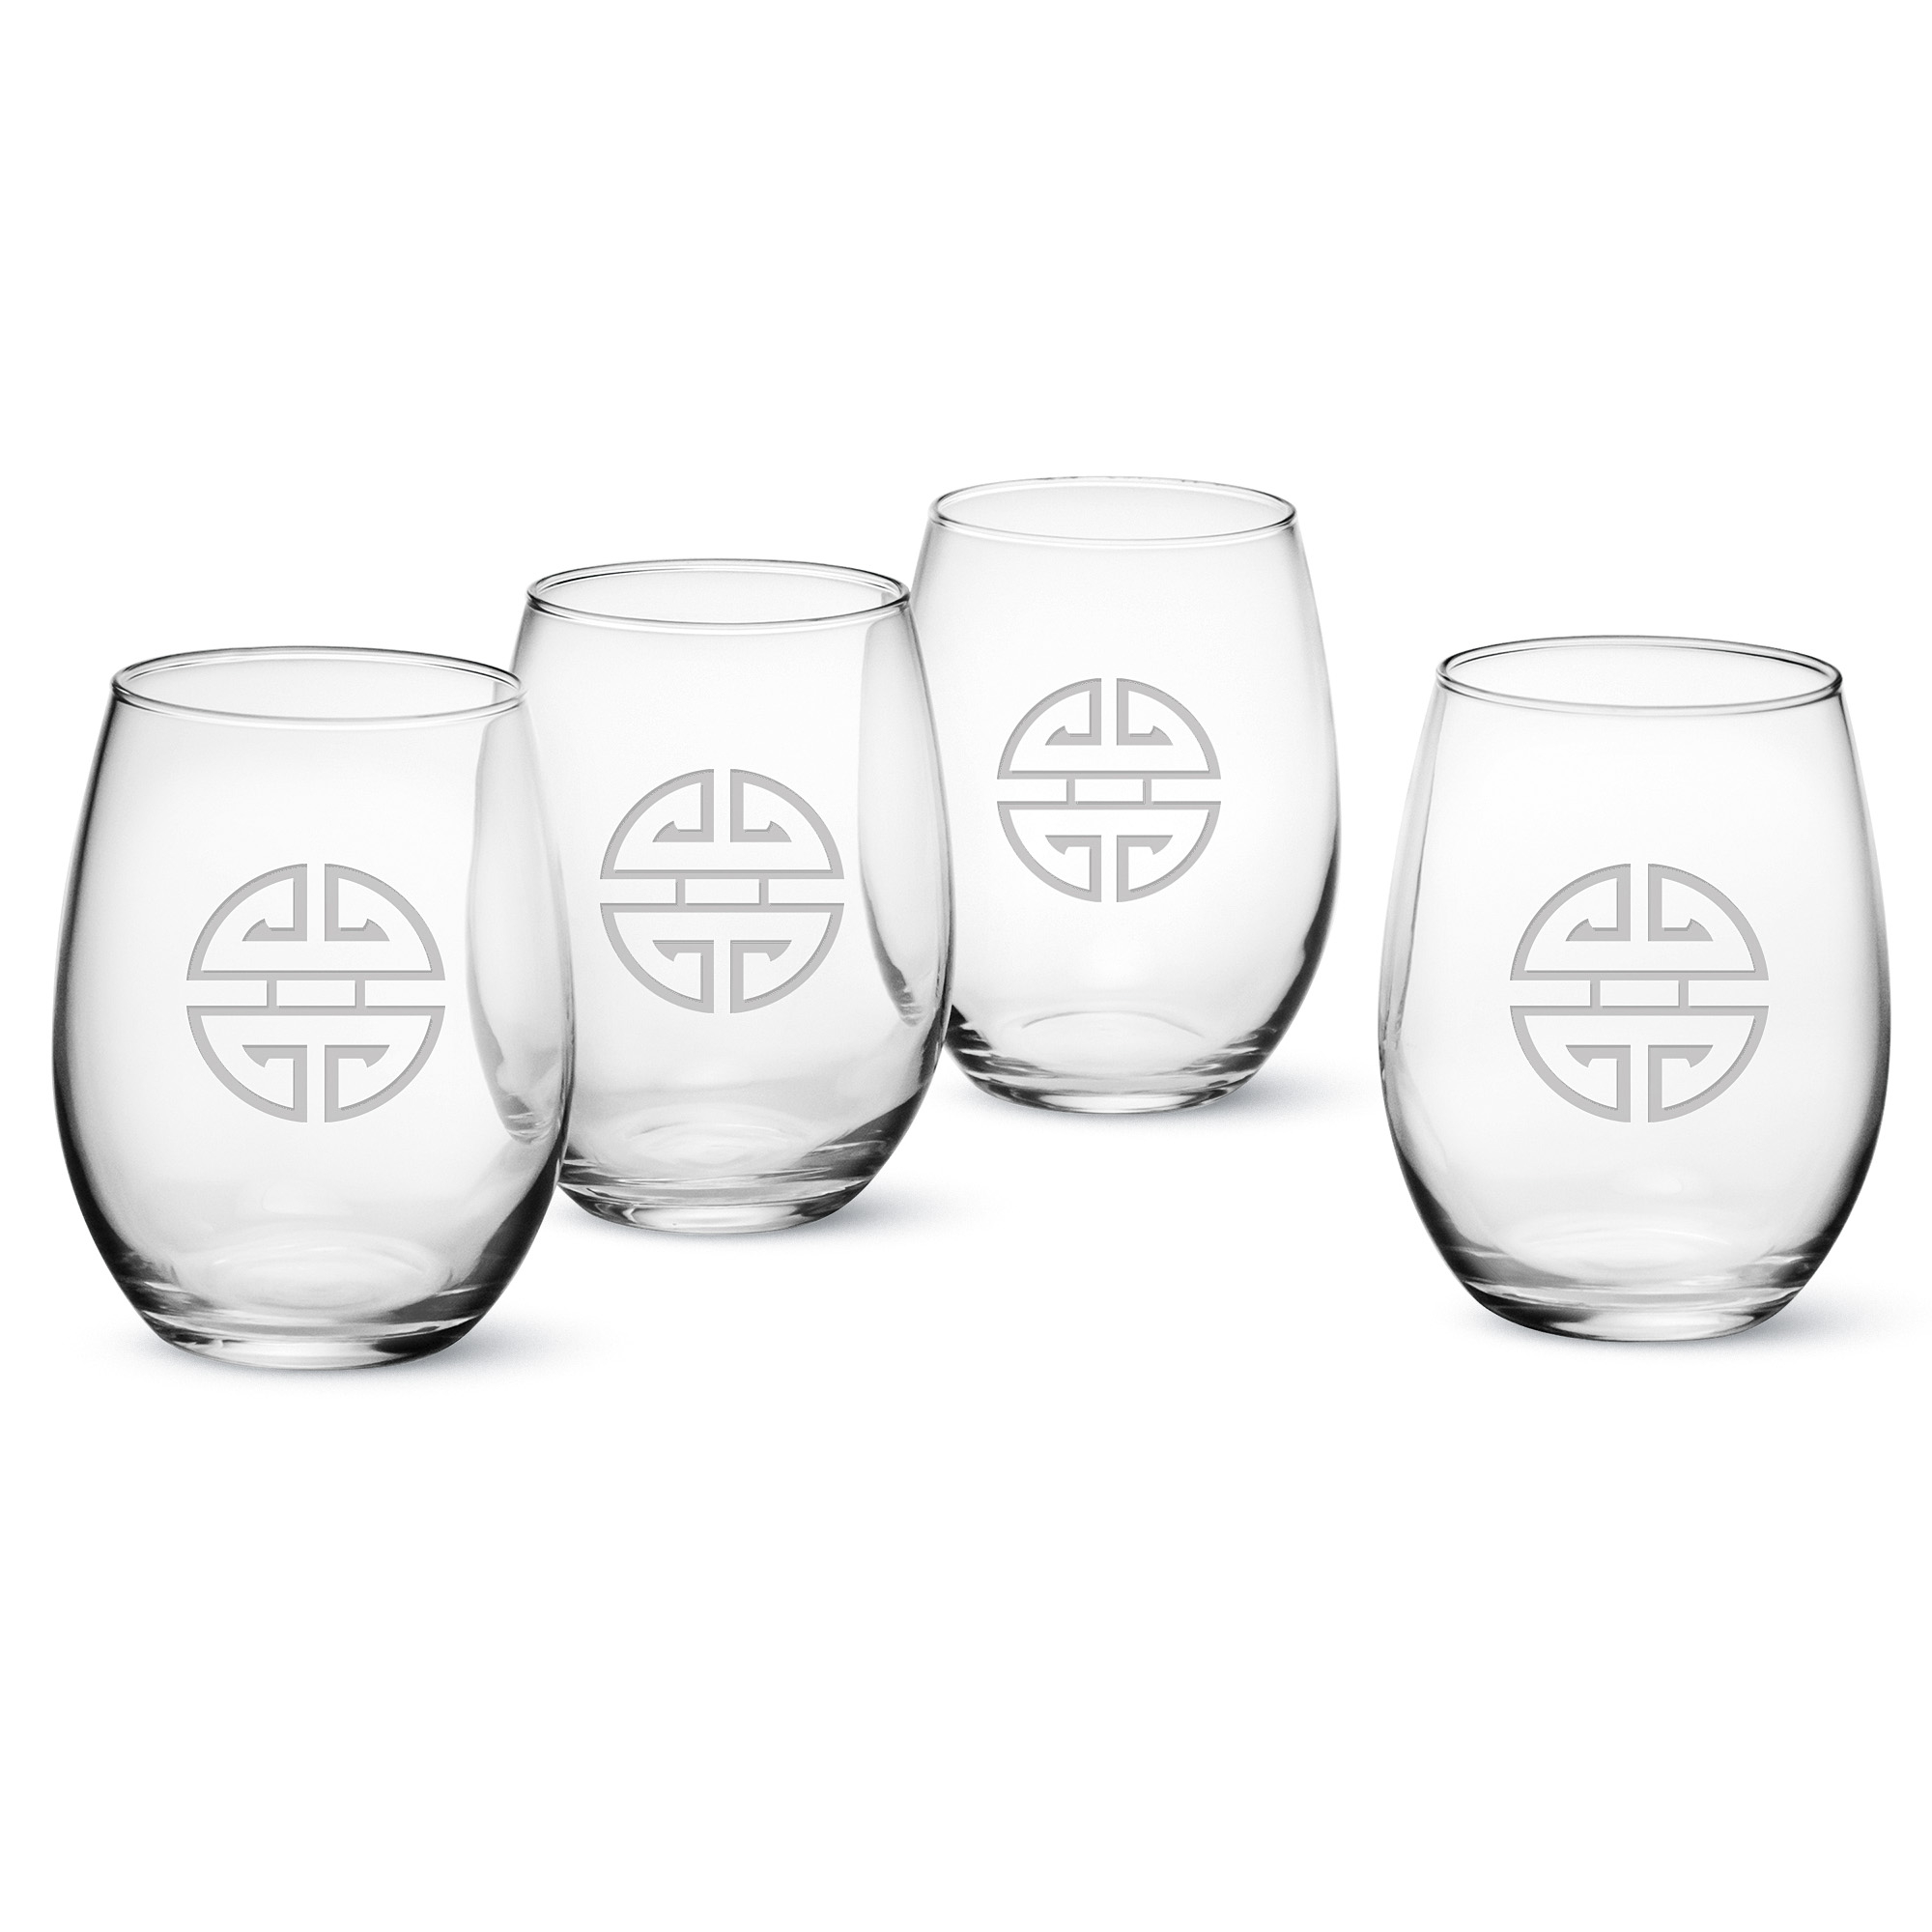 Shou Stemless Wine Glasses, Set Of 4